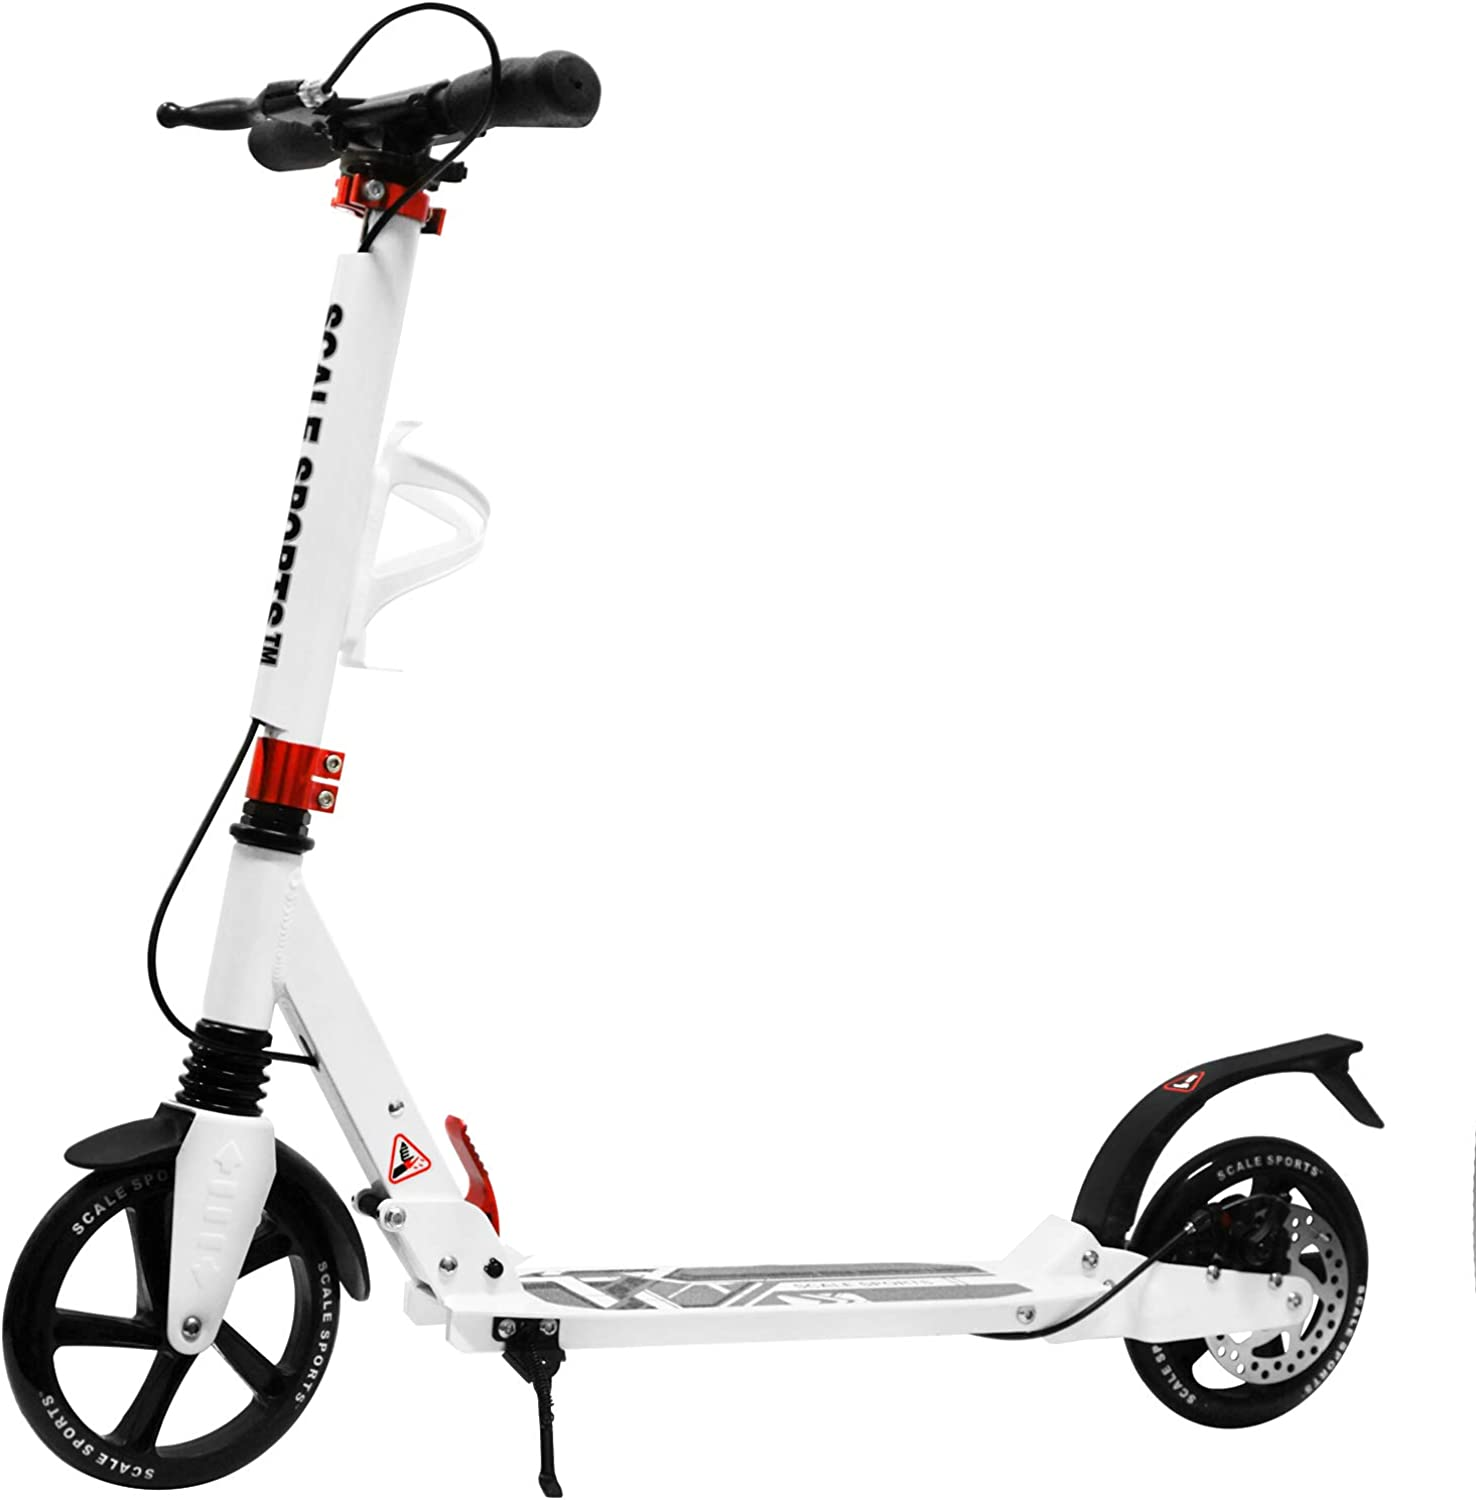 Scale Sports Adult Kick Scooter Portable Lightweight Adjustable Suspension Disc Hand Brake